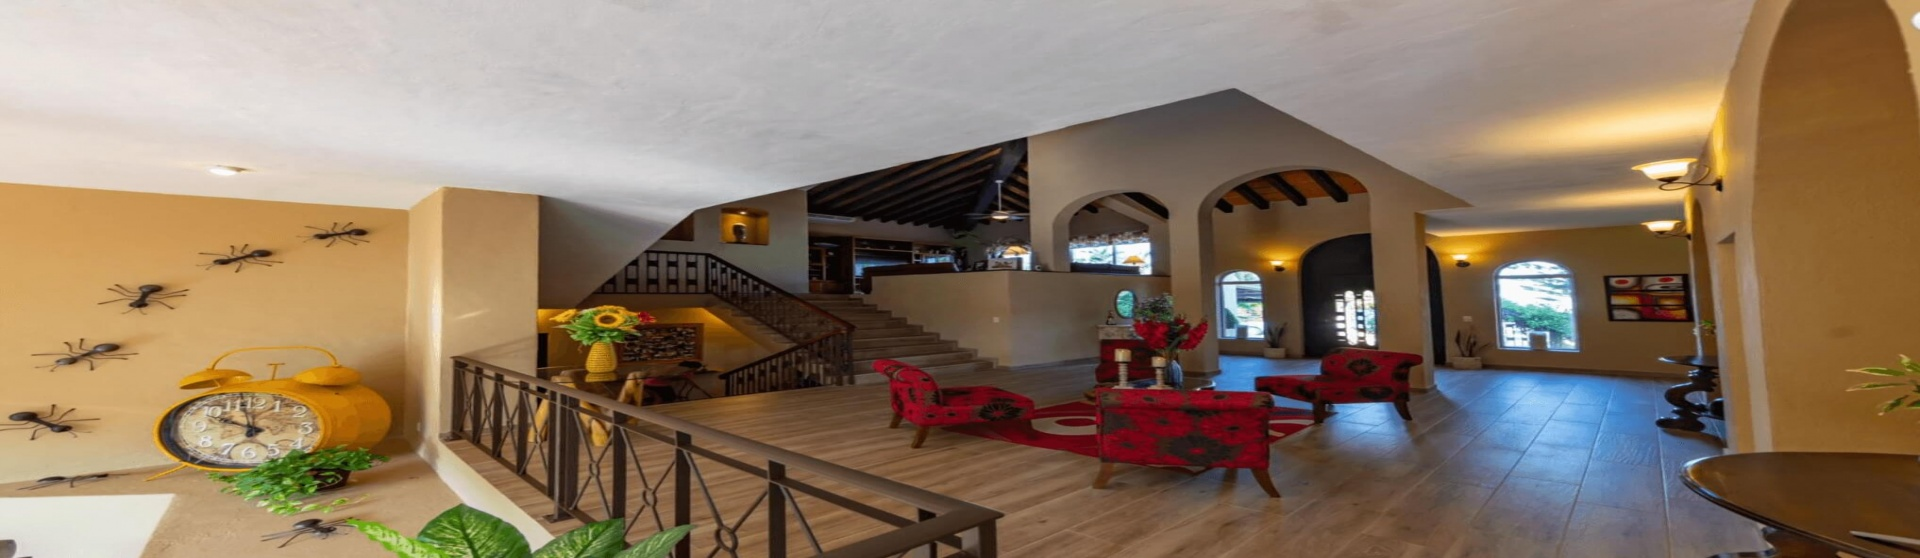 34 Calle Gaviotas, Puerto Vallarta, 5 Bedrooms Bedrooms, ,6 BathroomsBathrooms,Villa,For Sale,Calle Gaviotas,1000